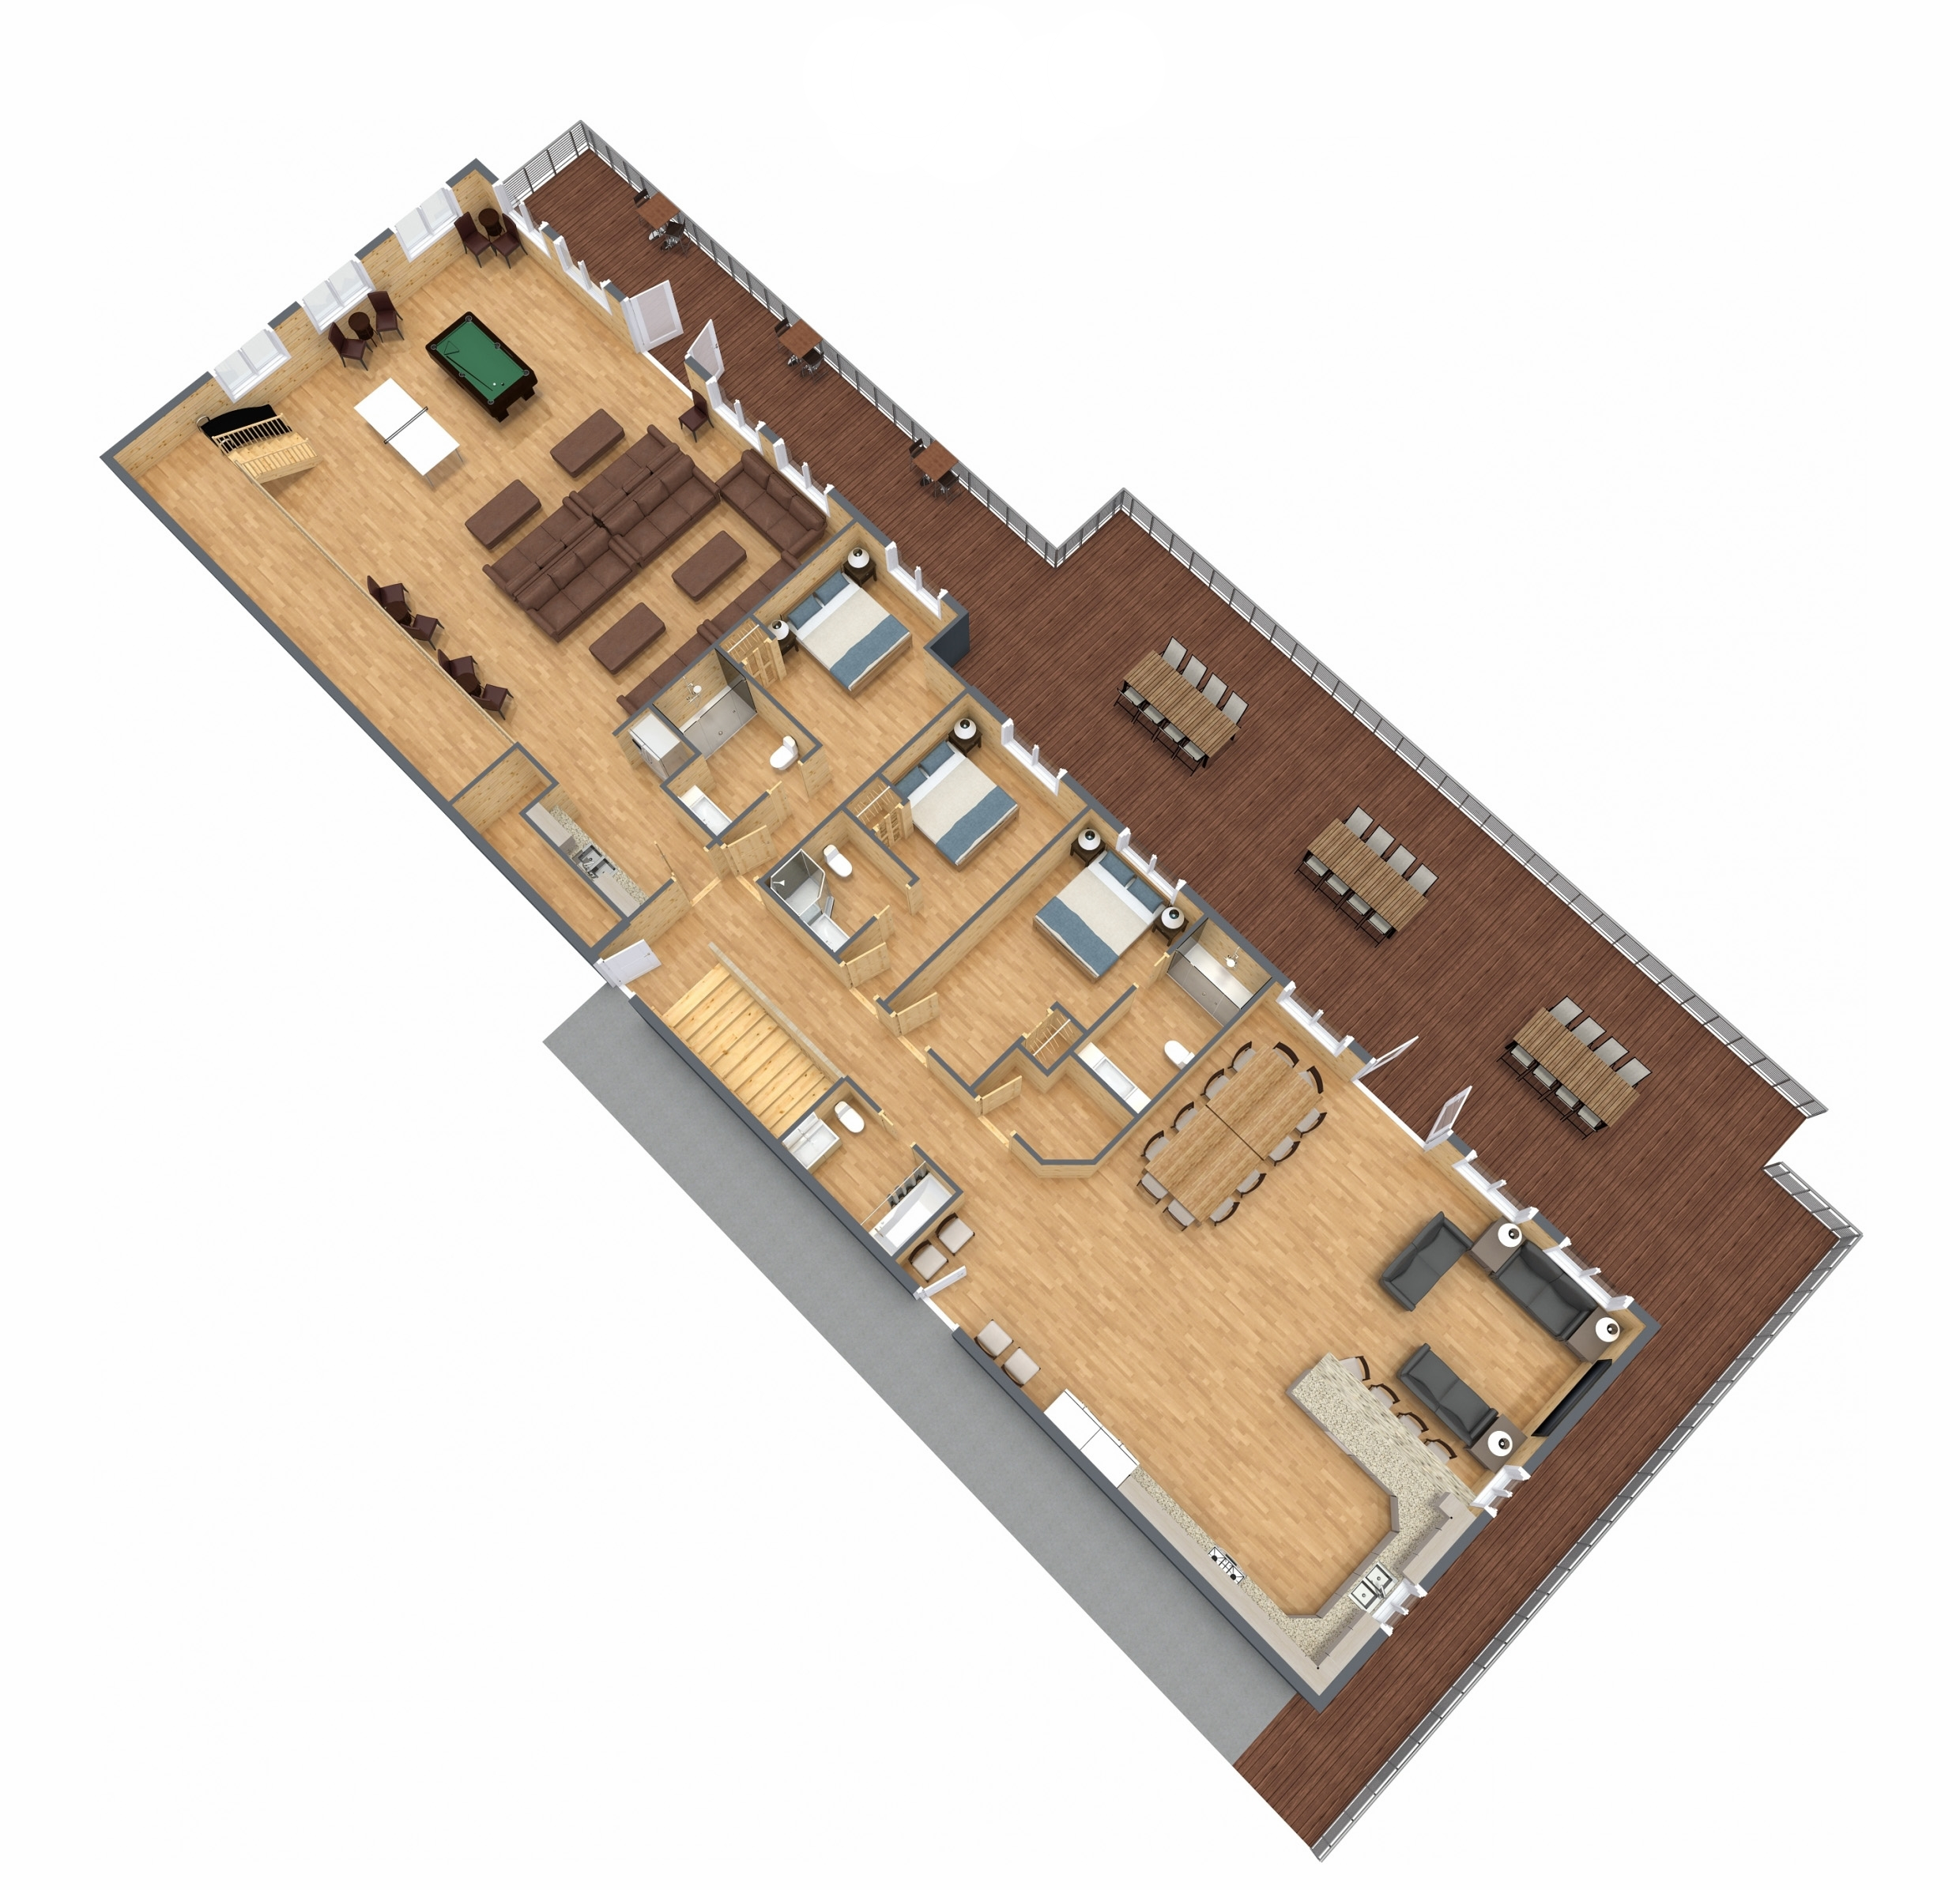 Blue Spruce Lodge - Floor Plan - Main Floor.jpg